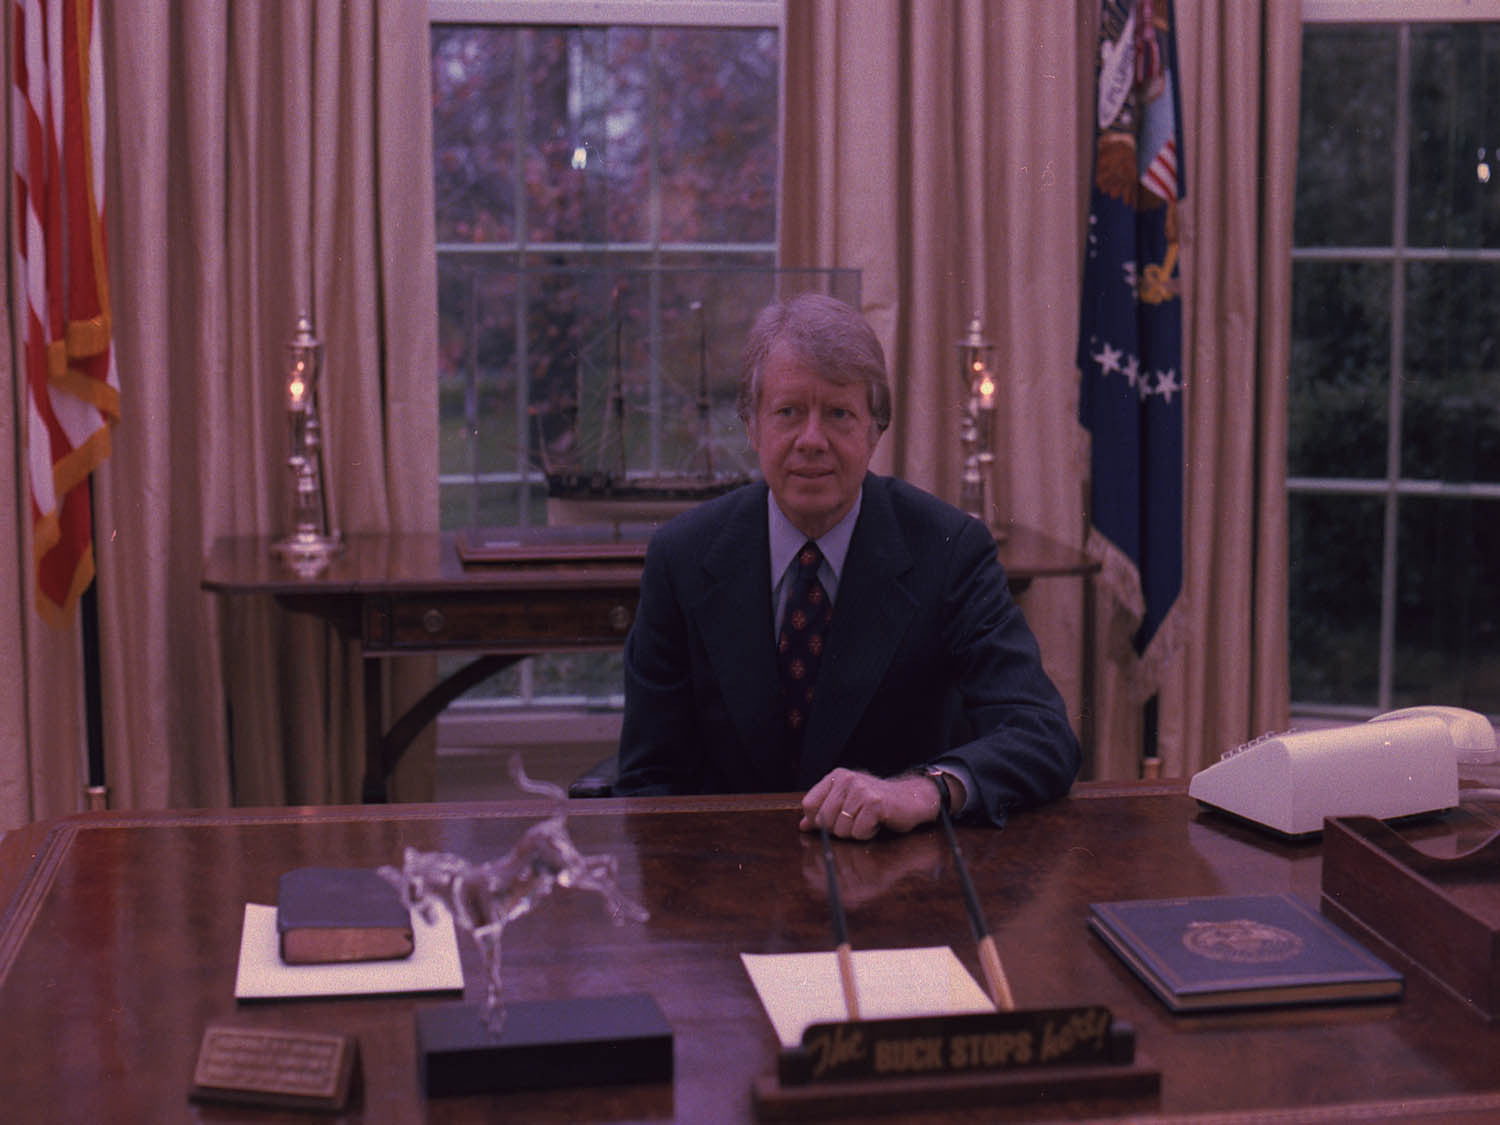 jimmy carter oval office. Jimmy Carter At His Desk In The Oval Office L